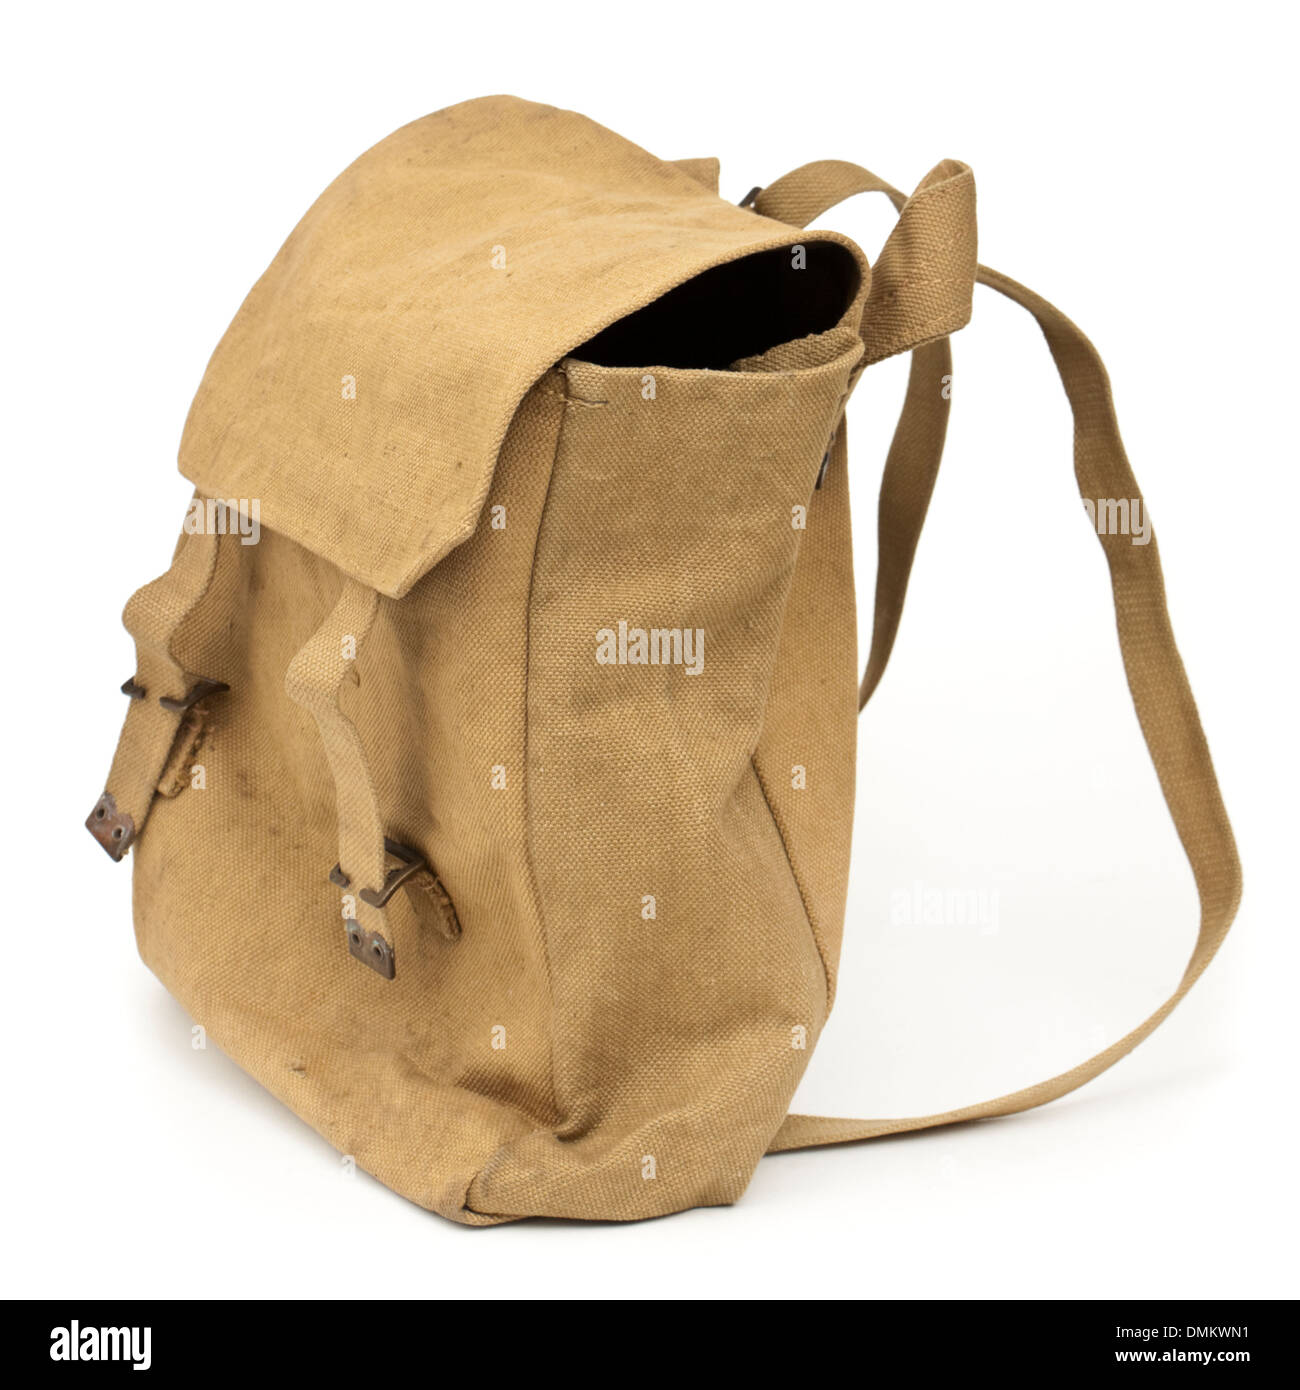 Authentic WW2 British Army / Home Guard issued canvas bag from 1943 - Stock Image